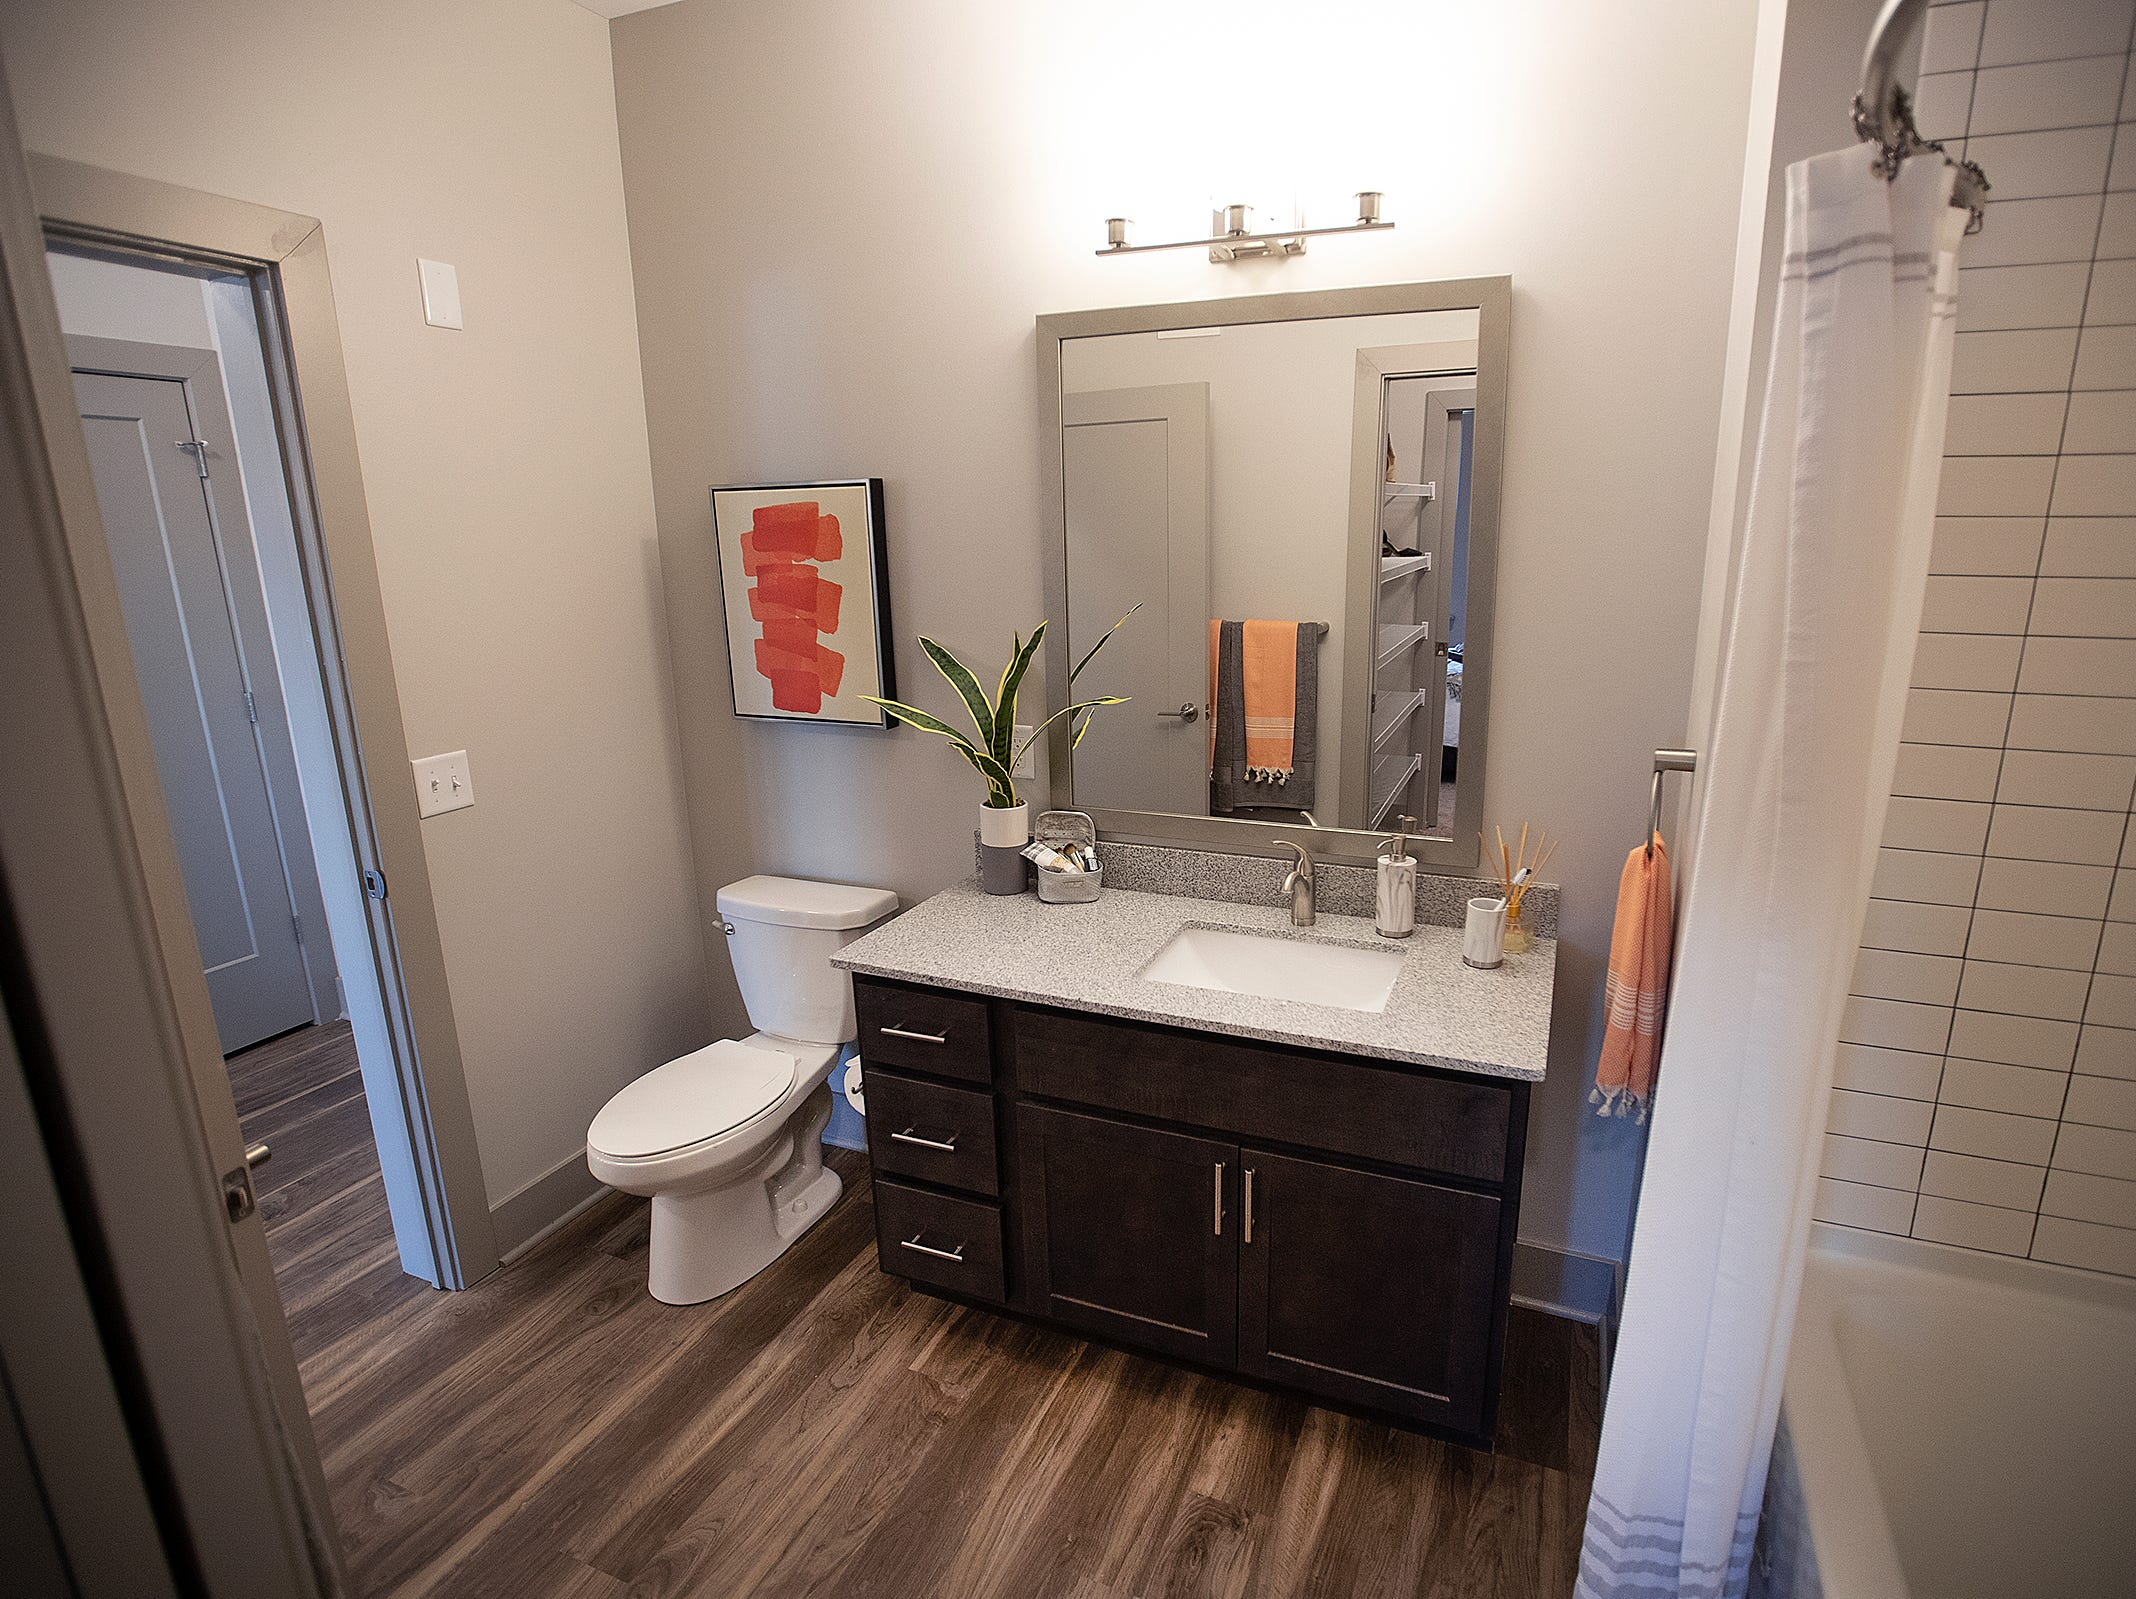 Here is the one bedroom apartment at the River House.The River House features studio, 1 and 2 bedroom new apartment homes in Broad Ripple on Tueday, March 12, 2019. Located in the heart of Broad Ripple right on the Monon Trail and White River.